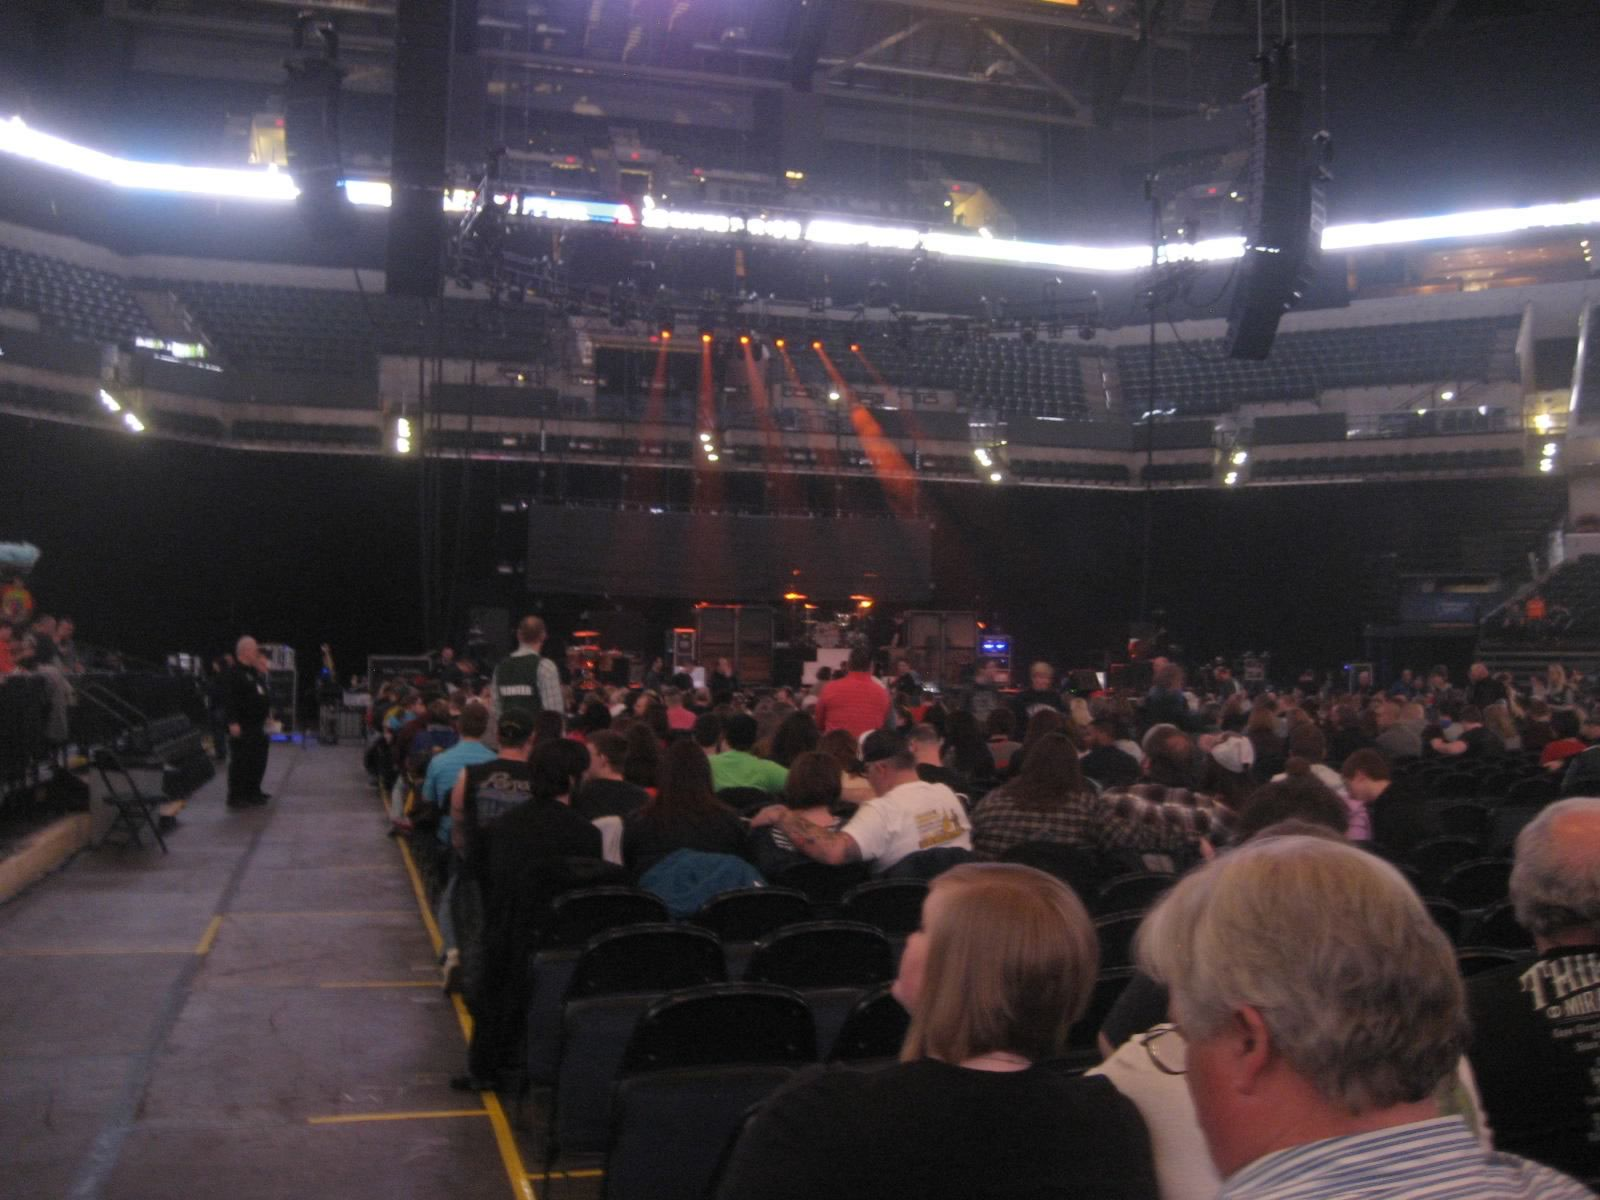 Concert Seat View for Bankers Life Fieldhouse Floor 3, Row 15, Seat 52